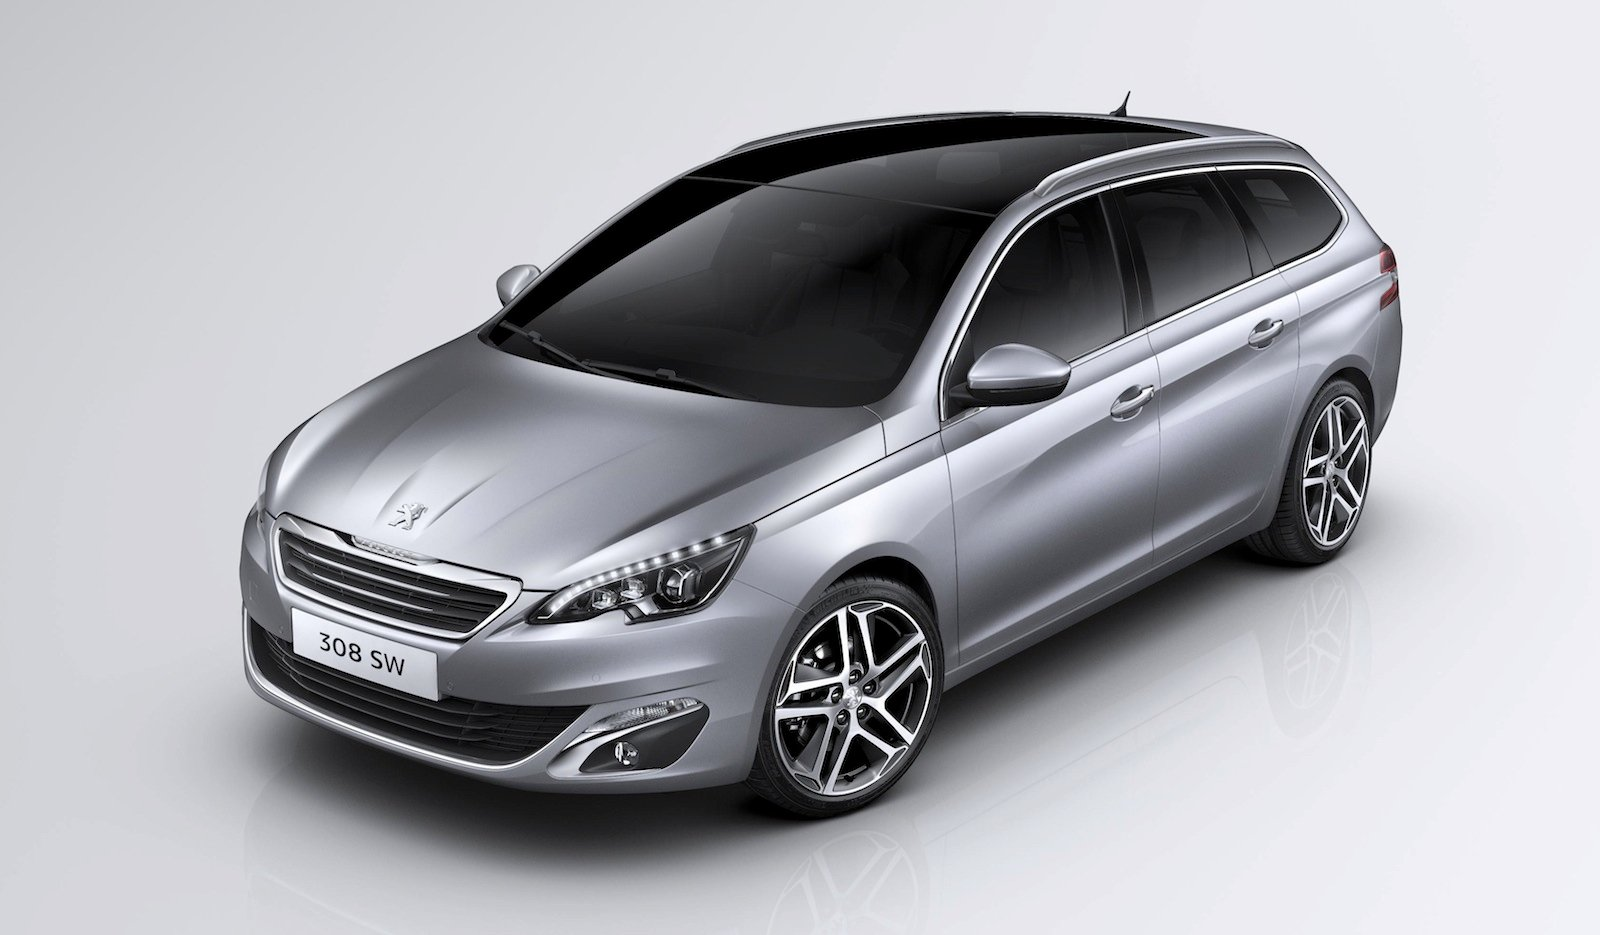 Peugeot 308 Sw Compact Wagon Revealed Photos Caradvice